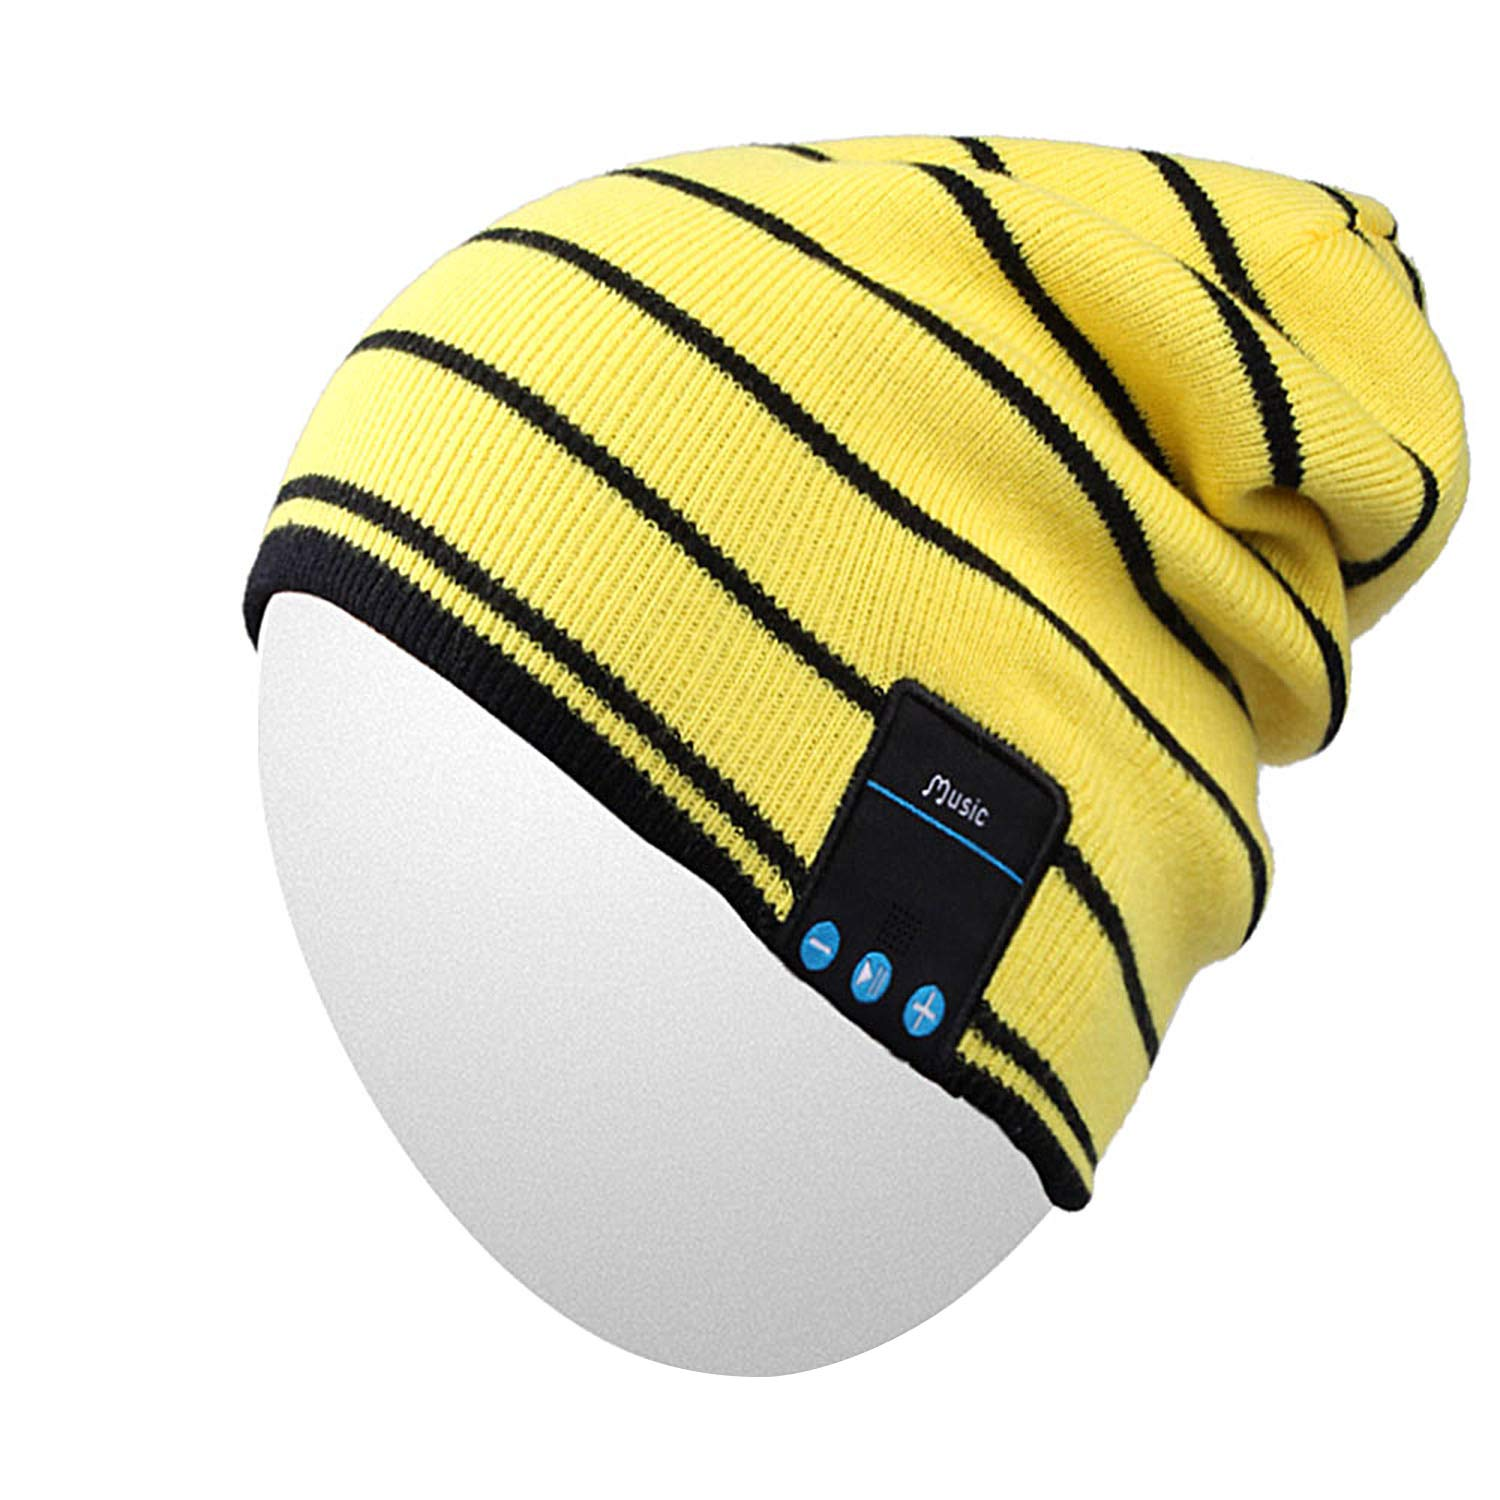 Bluetooth Hat,Qshell Trendy Warm Soft Knit Slouchy Music Beanie Skully Cap with Wireless Bluetooth Headphone Headset Earphone Hands-free Phone Call for Winter Sports Fitness Casual Activities - Yellow